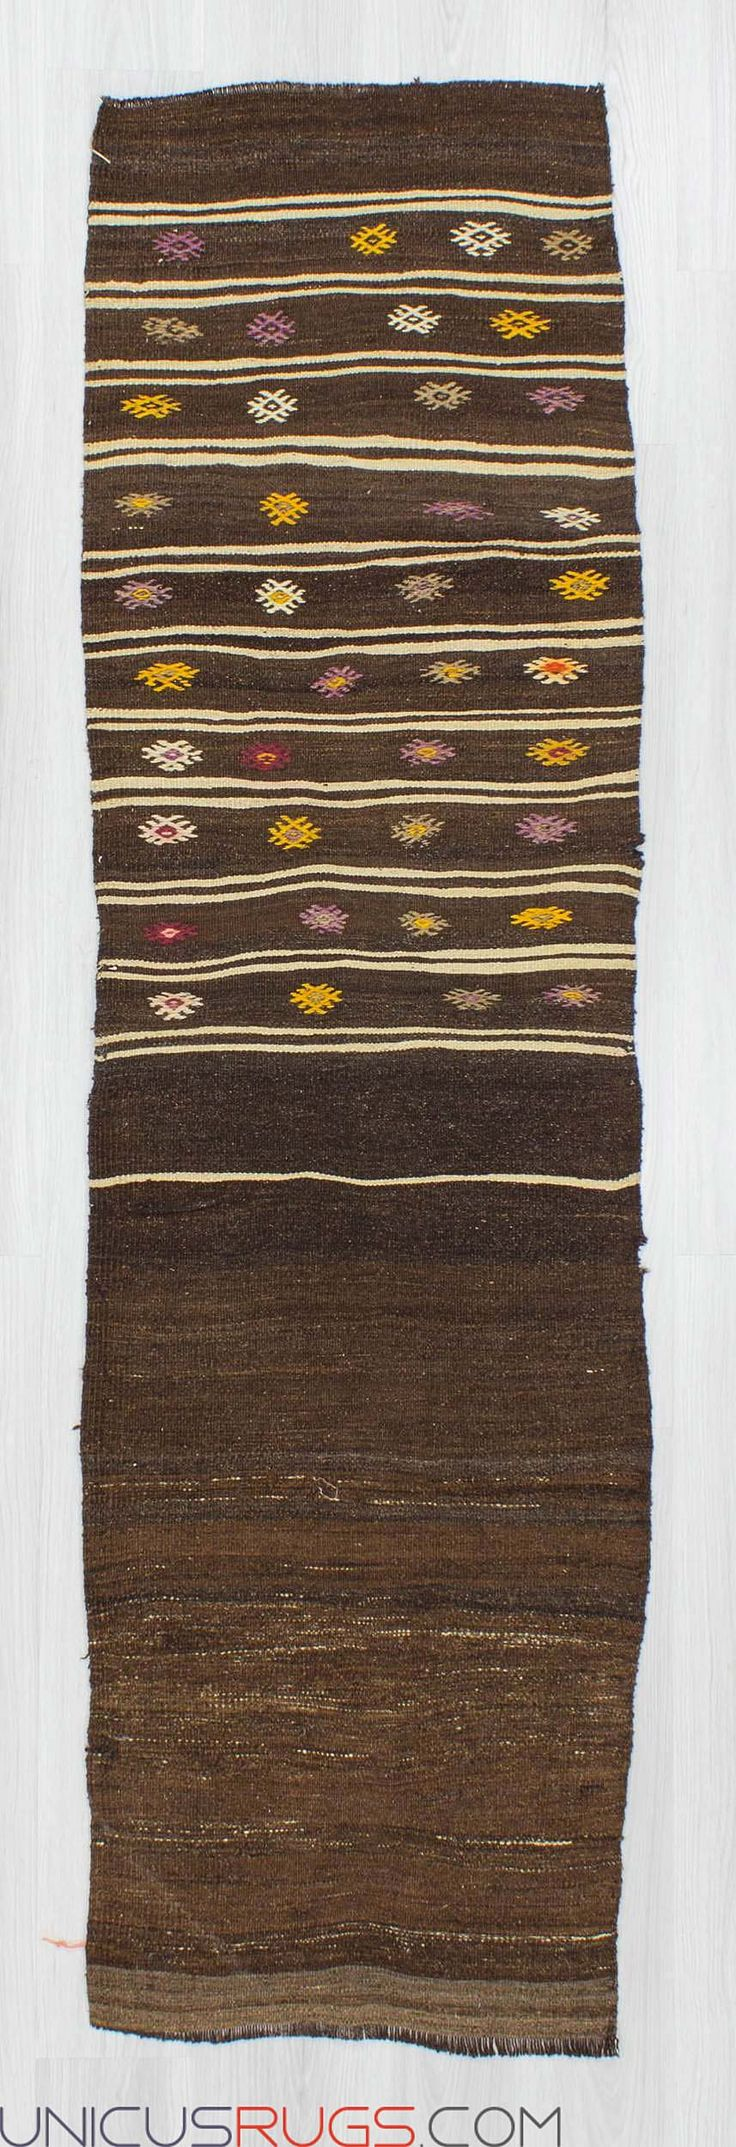 "Vintage kilim runner from Malatya region of Turkey. In good condition. Approximately 50-60 years old Width: 2' 3"" - Length: 7' 9"" RUNNERS"